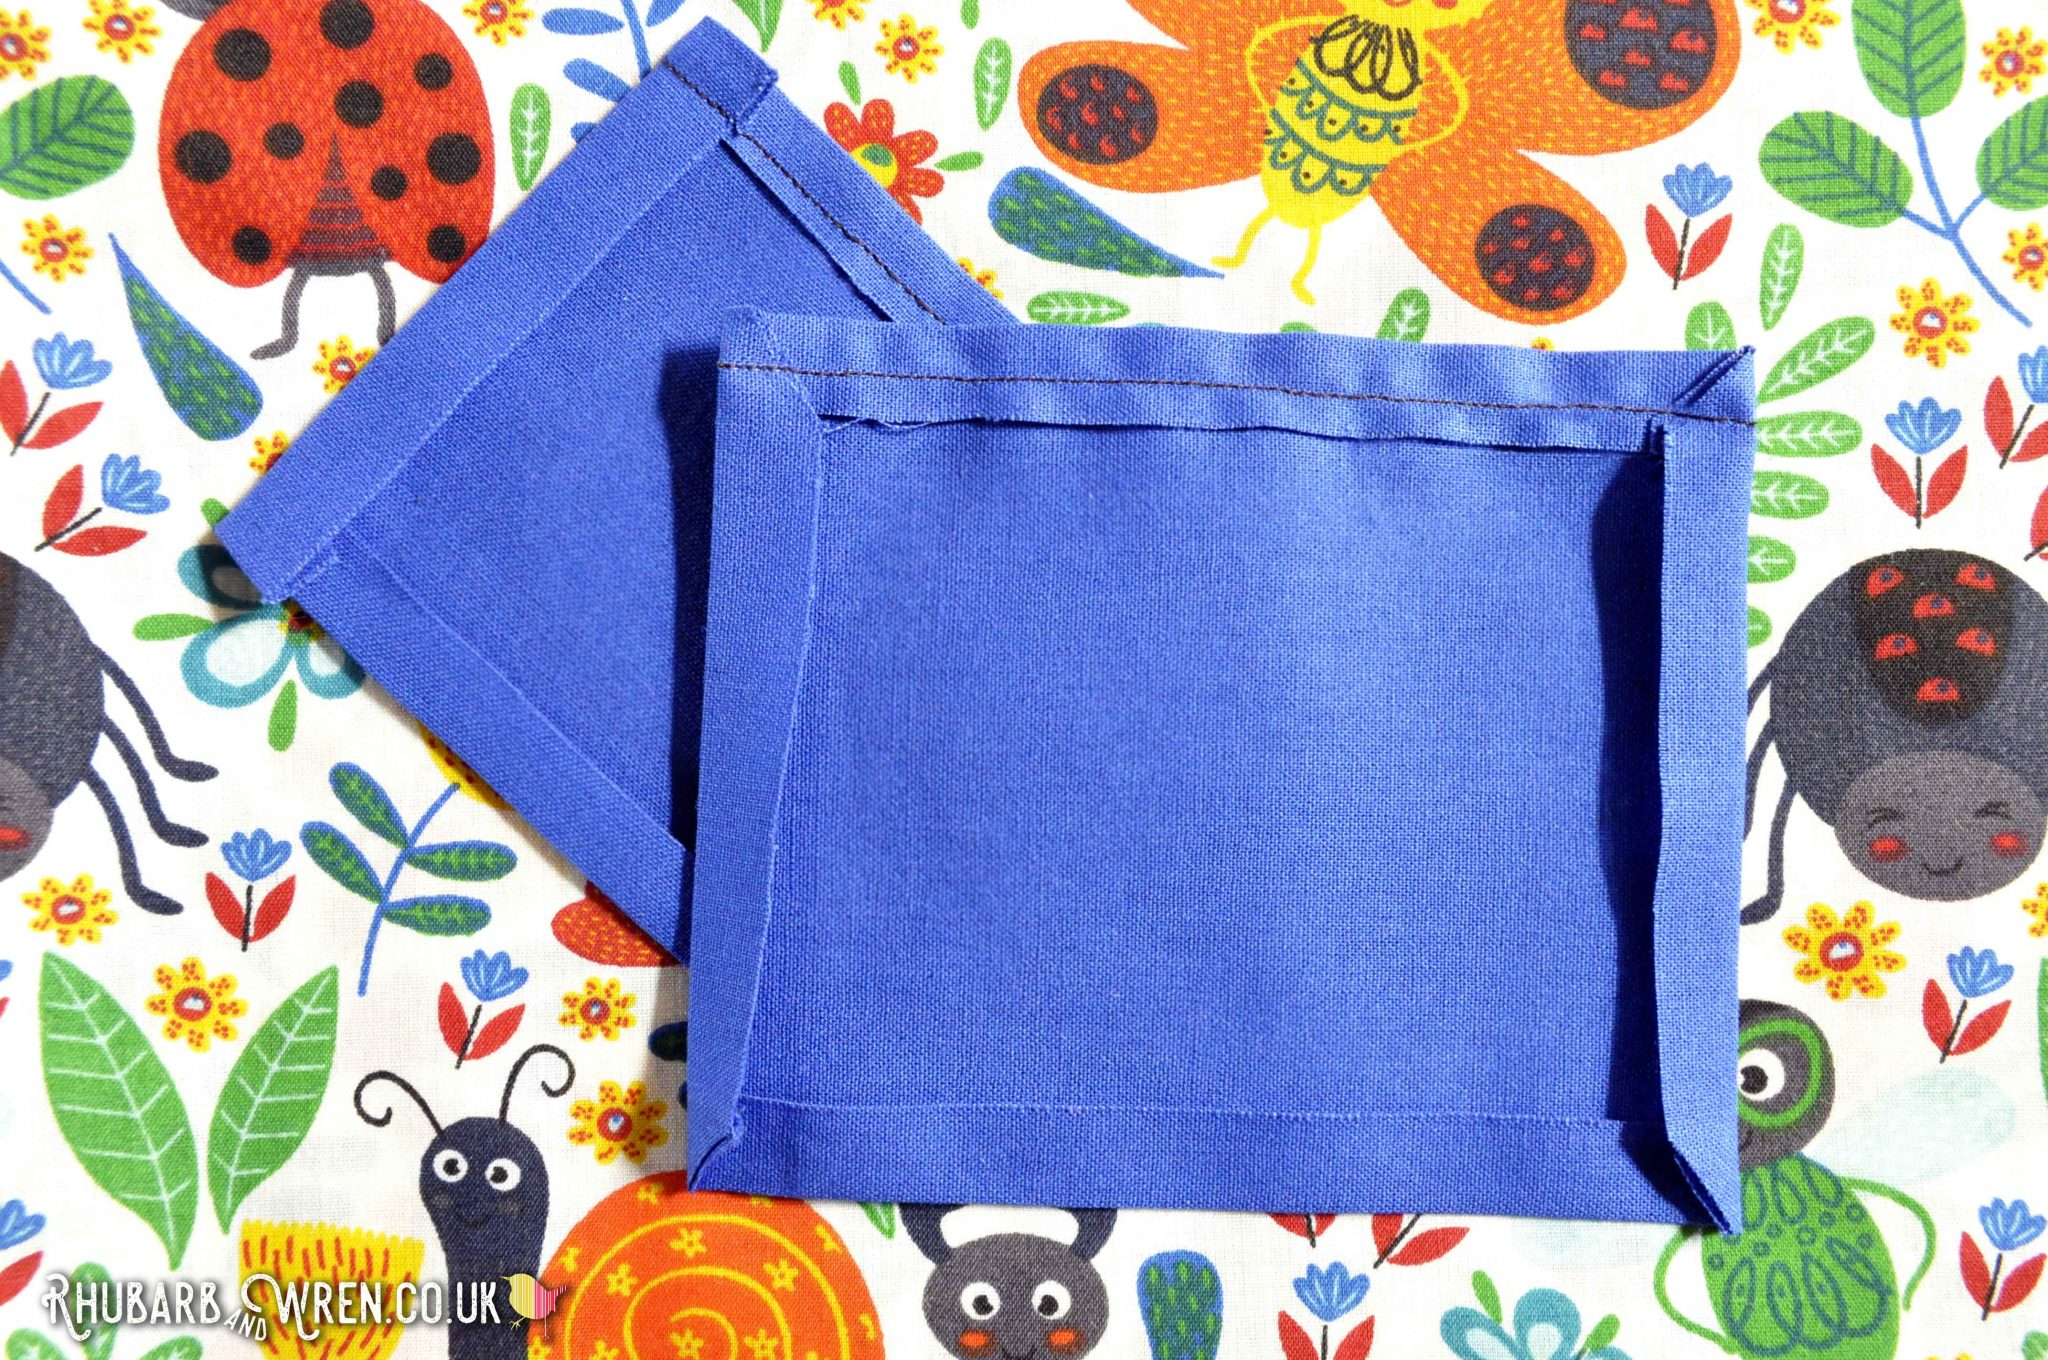 Pockets for a diy kids nature bag sewing project